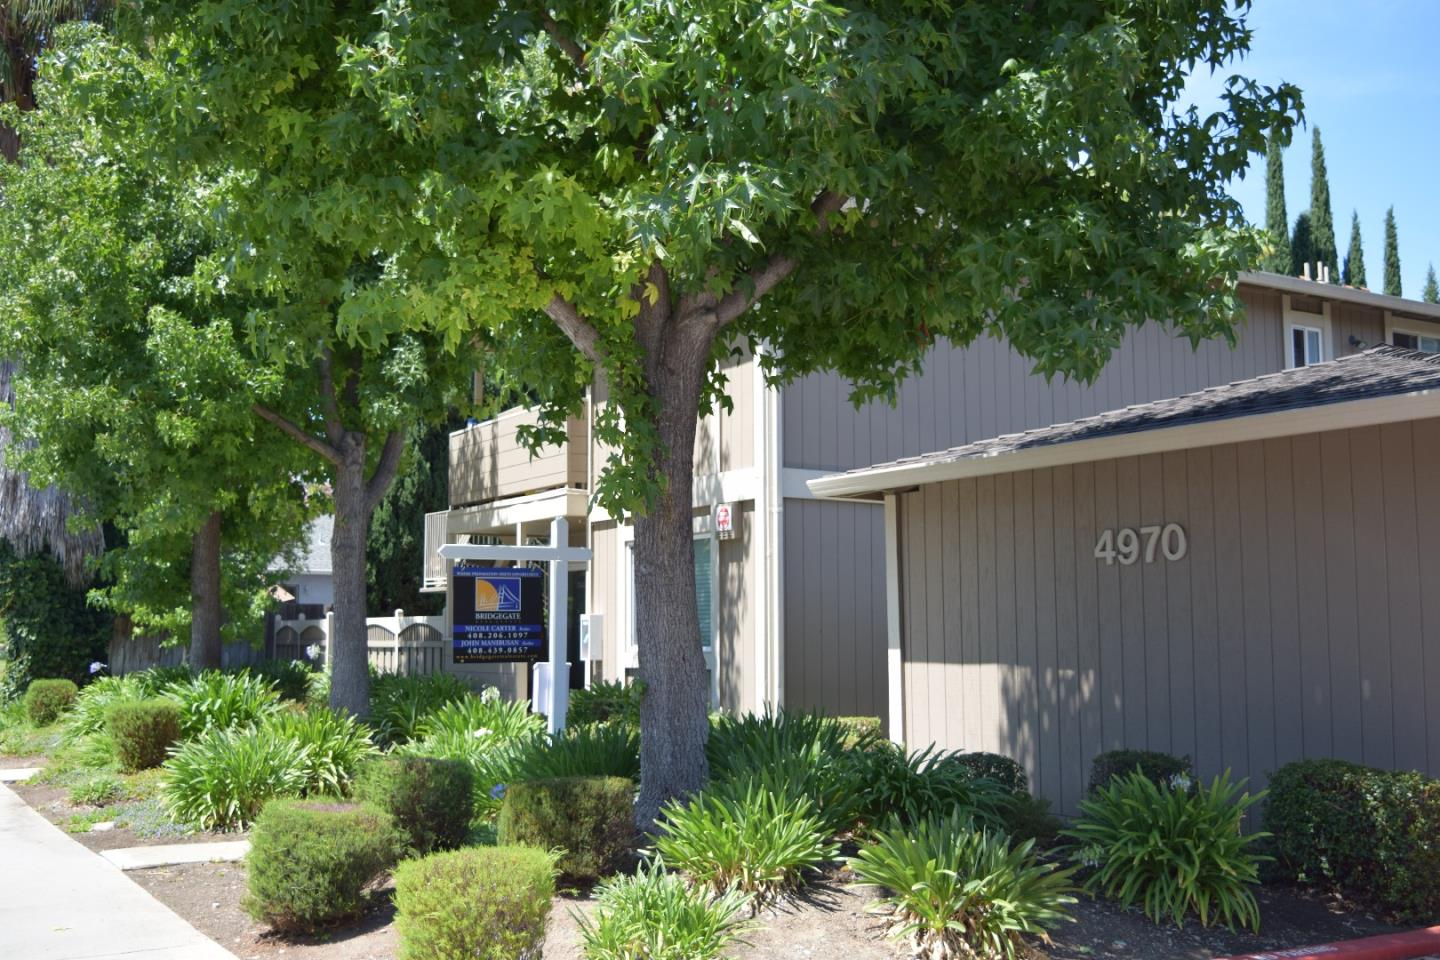 Additional photo for property listing at 4970 Cherry Avenue  San Jose, California 95118 United States